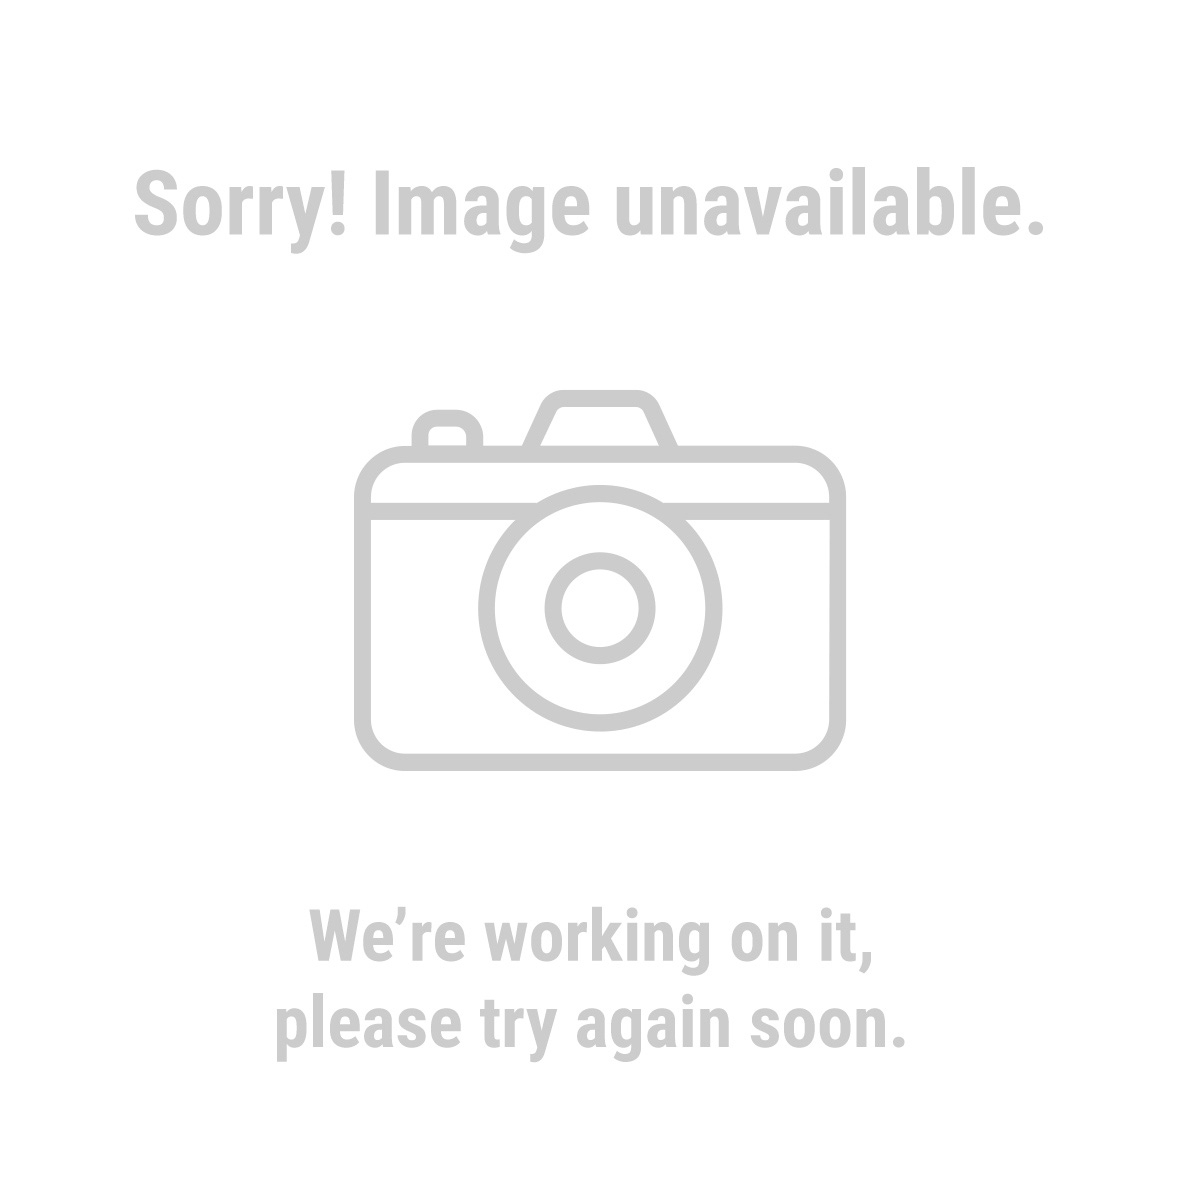 Pittsburgh 61411 45 Piece Titanium Nitride Coated Alloy Steel  SAE Tap & Die Set